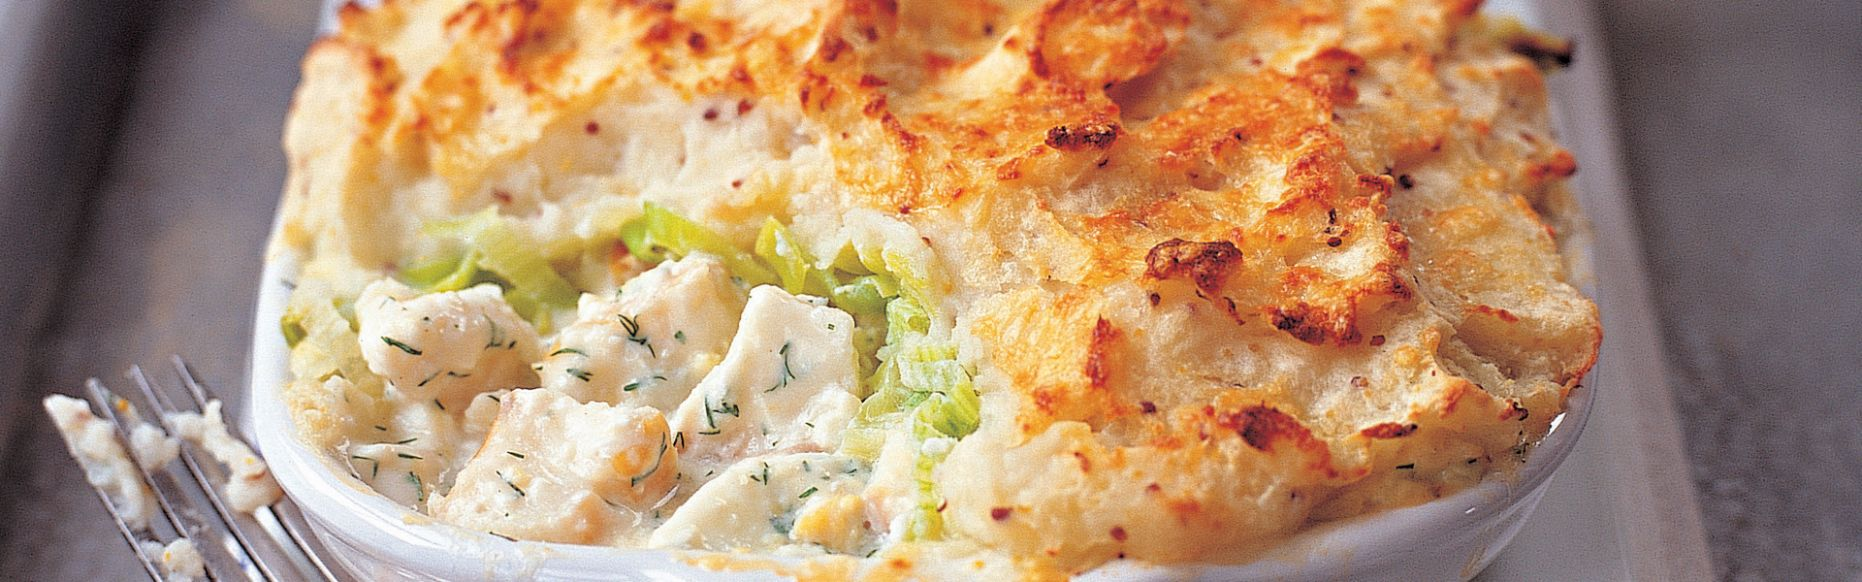 Mary Berry: Exceedingly Good Double Fish Pie Recipe - WHSmith Blog - Recipe Fish Pie Mary Berry